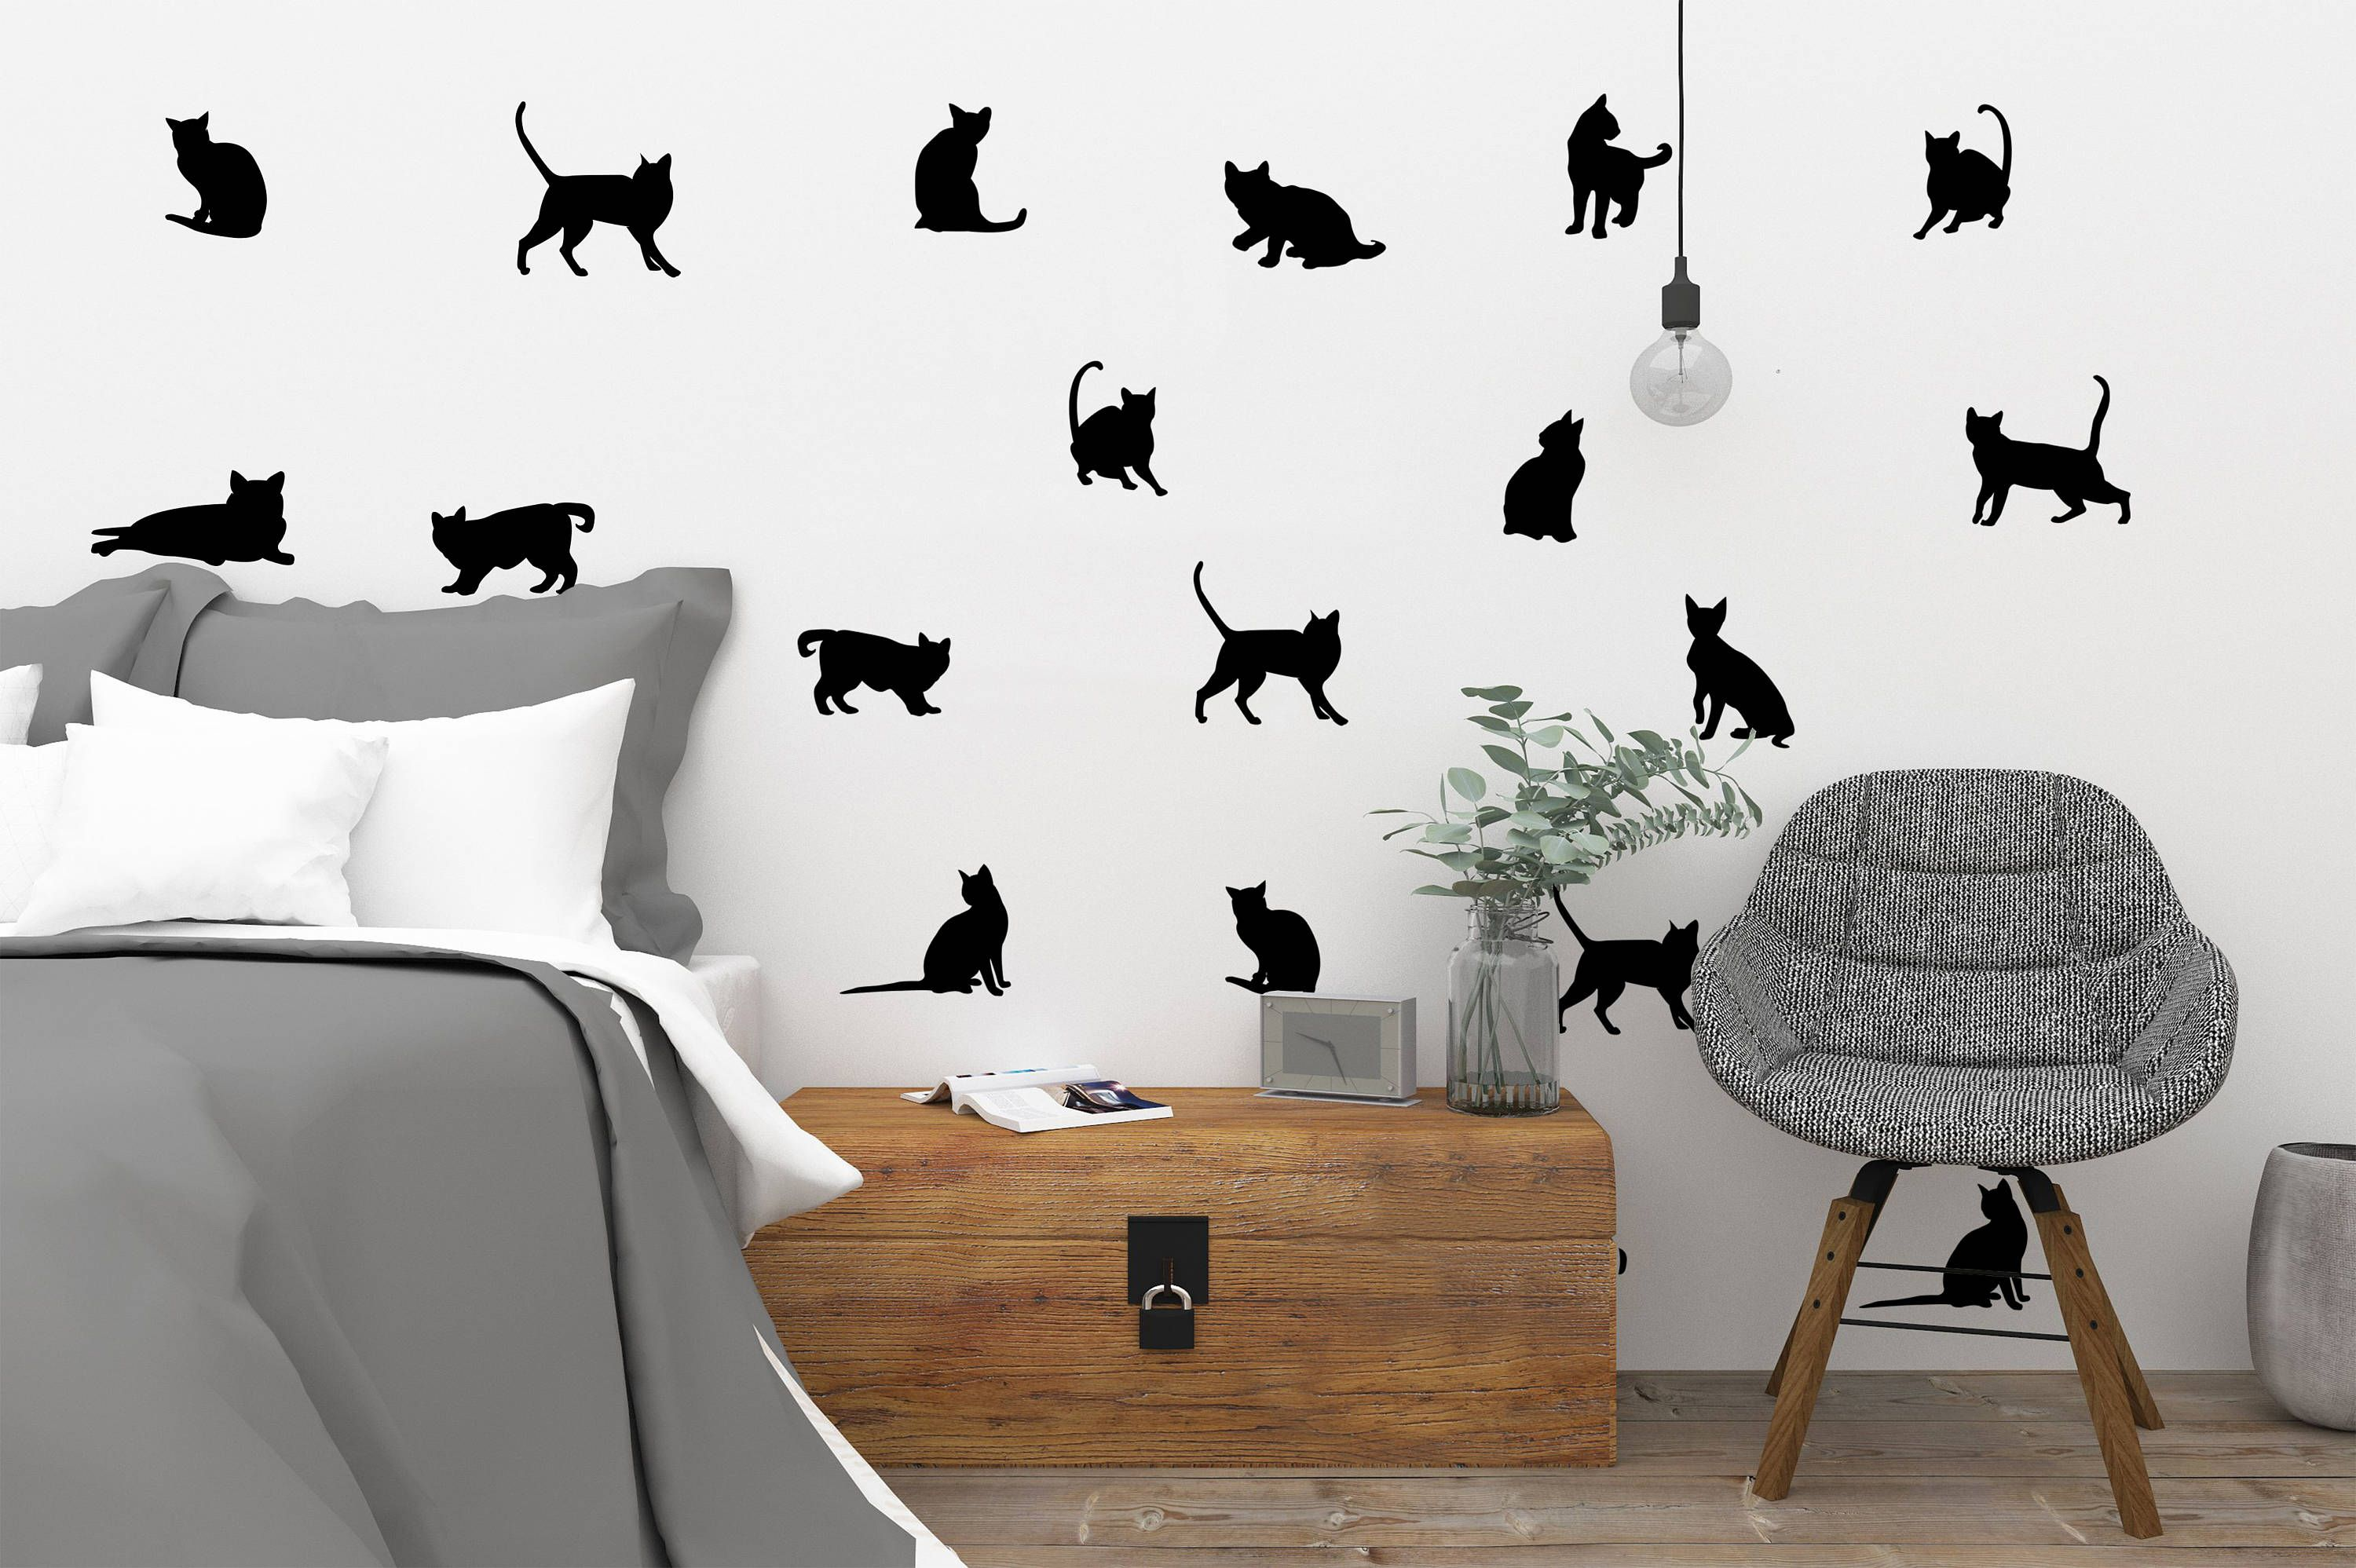 Balck Cats Wall DecalsKitty Wall DecalCats StickersCats - Vinyl decal cat pinterest